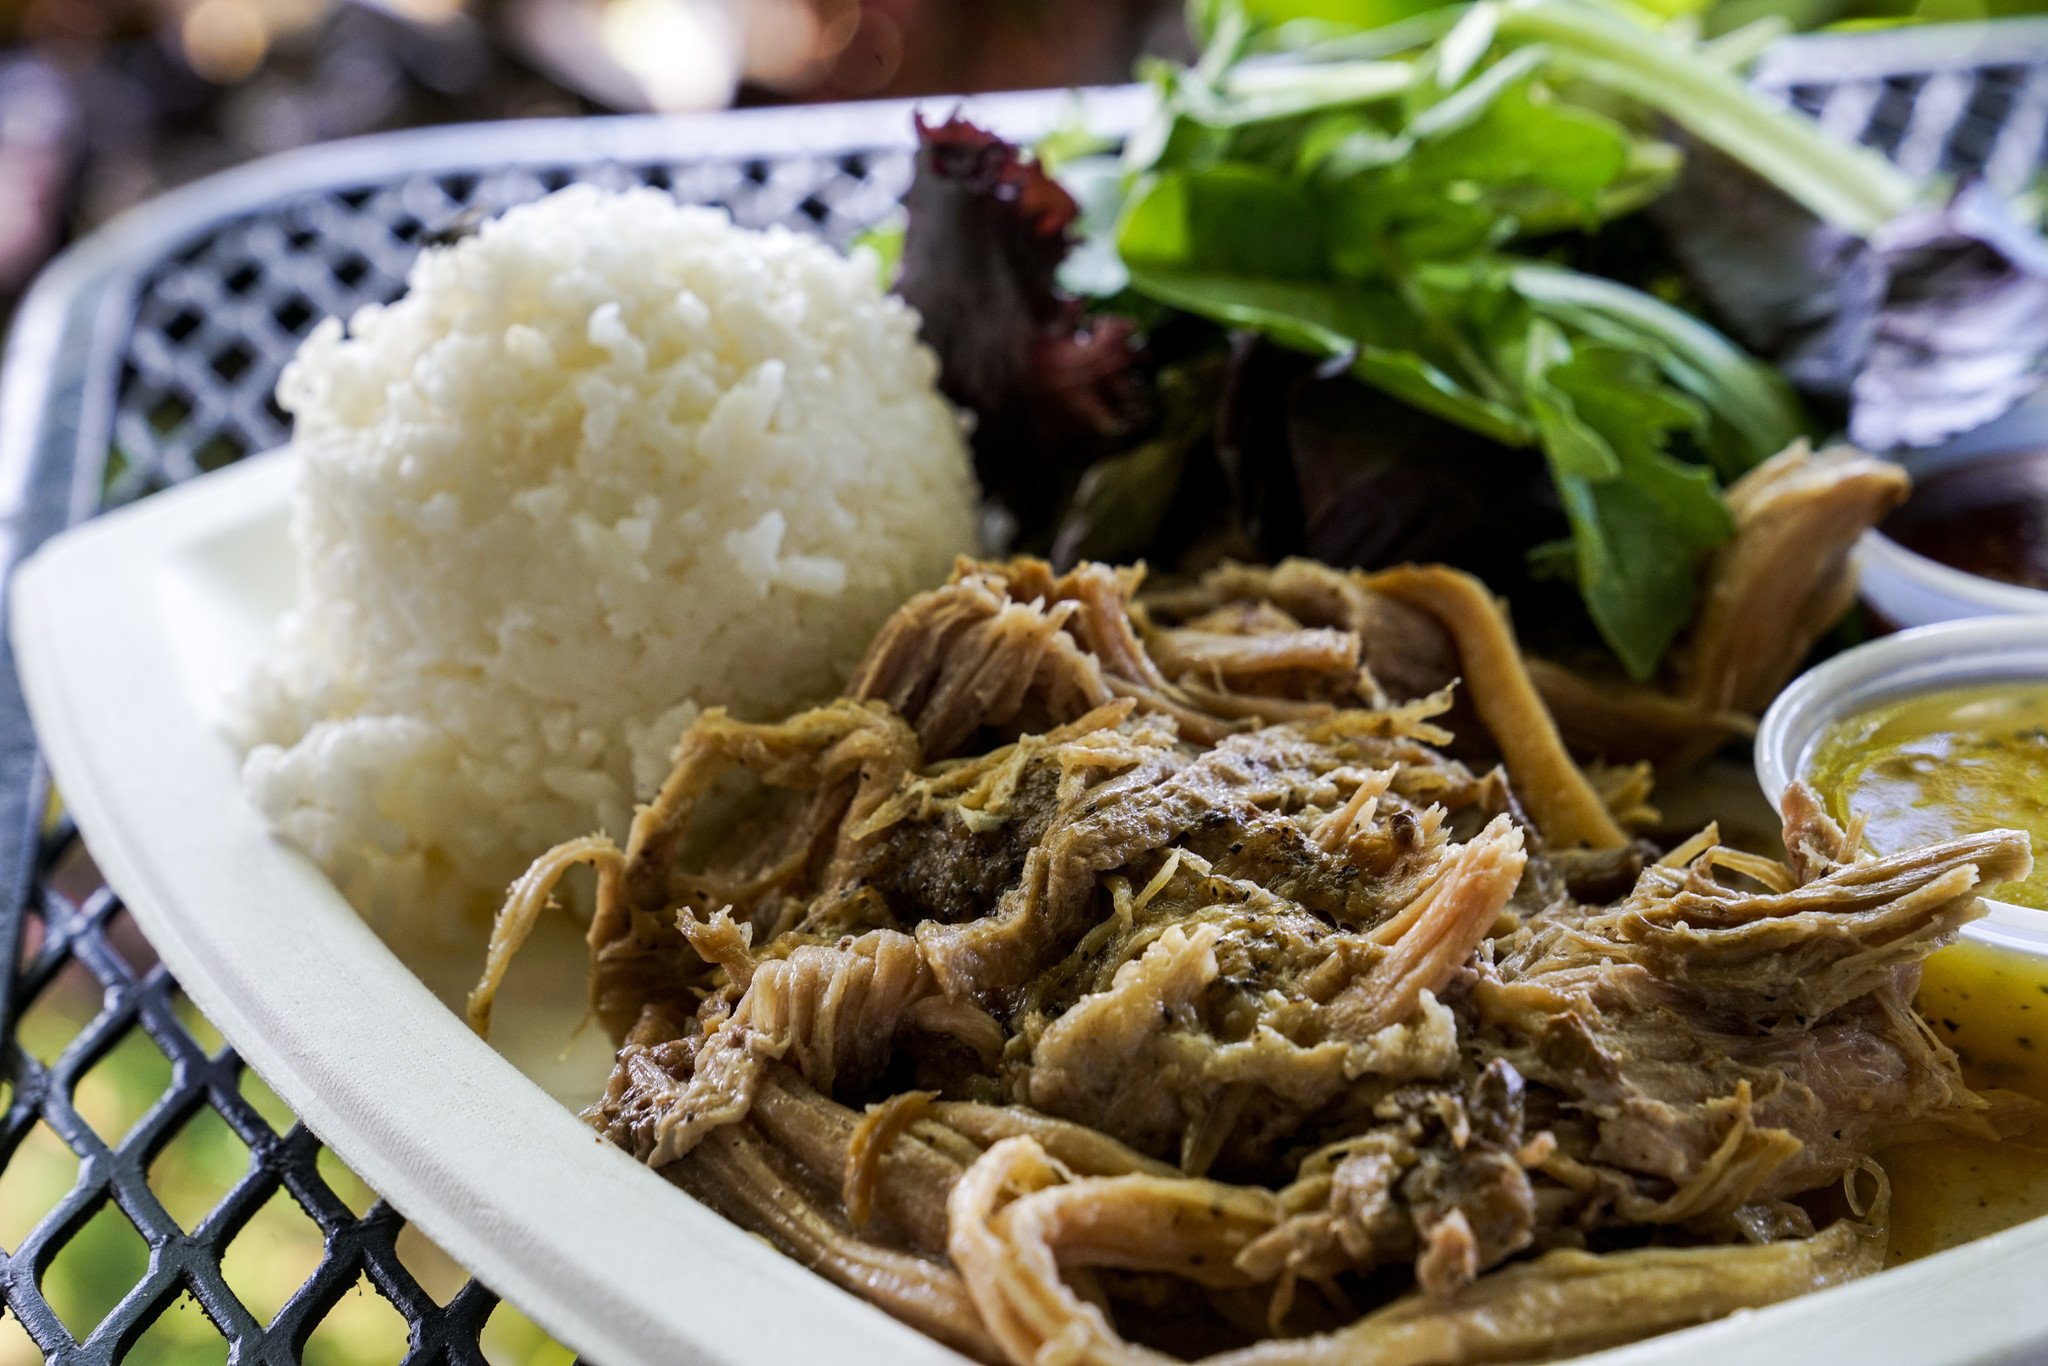 HALEIWA, HI - AUGUST 21: The Pork Plate Lunch, featuring 12-hour slow-roasted Kalua pulled pork, whi